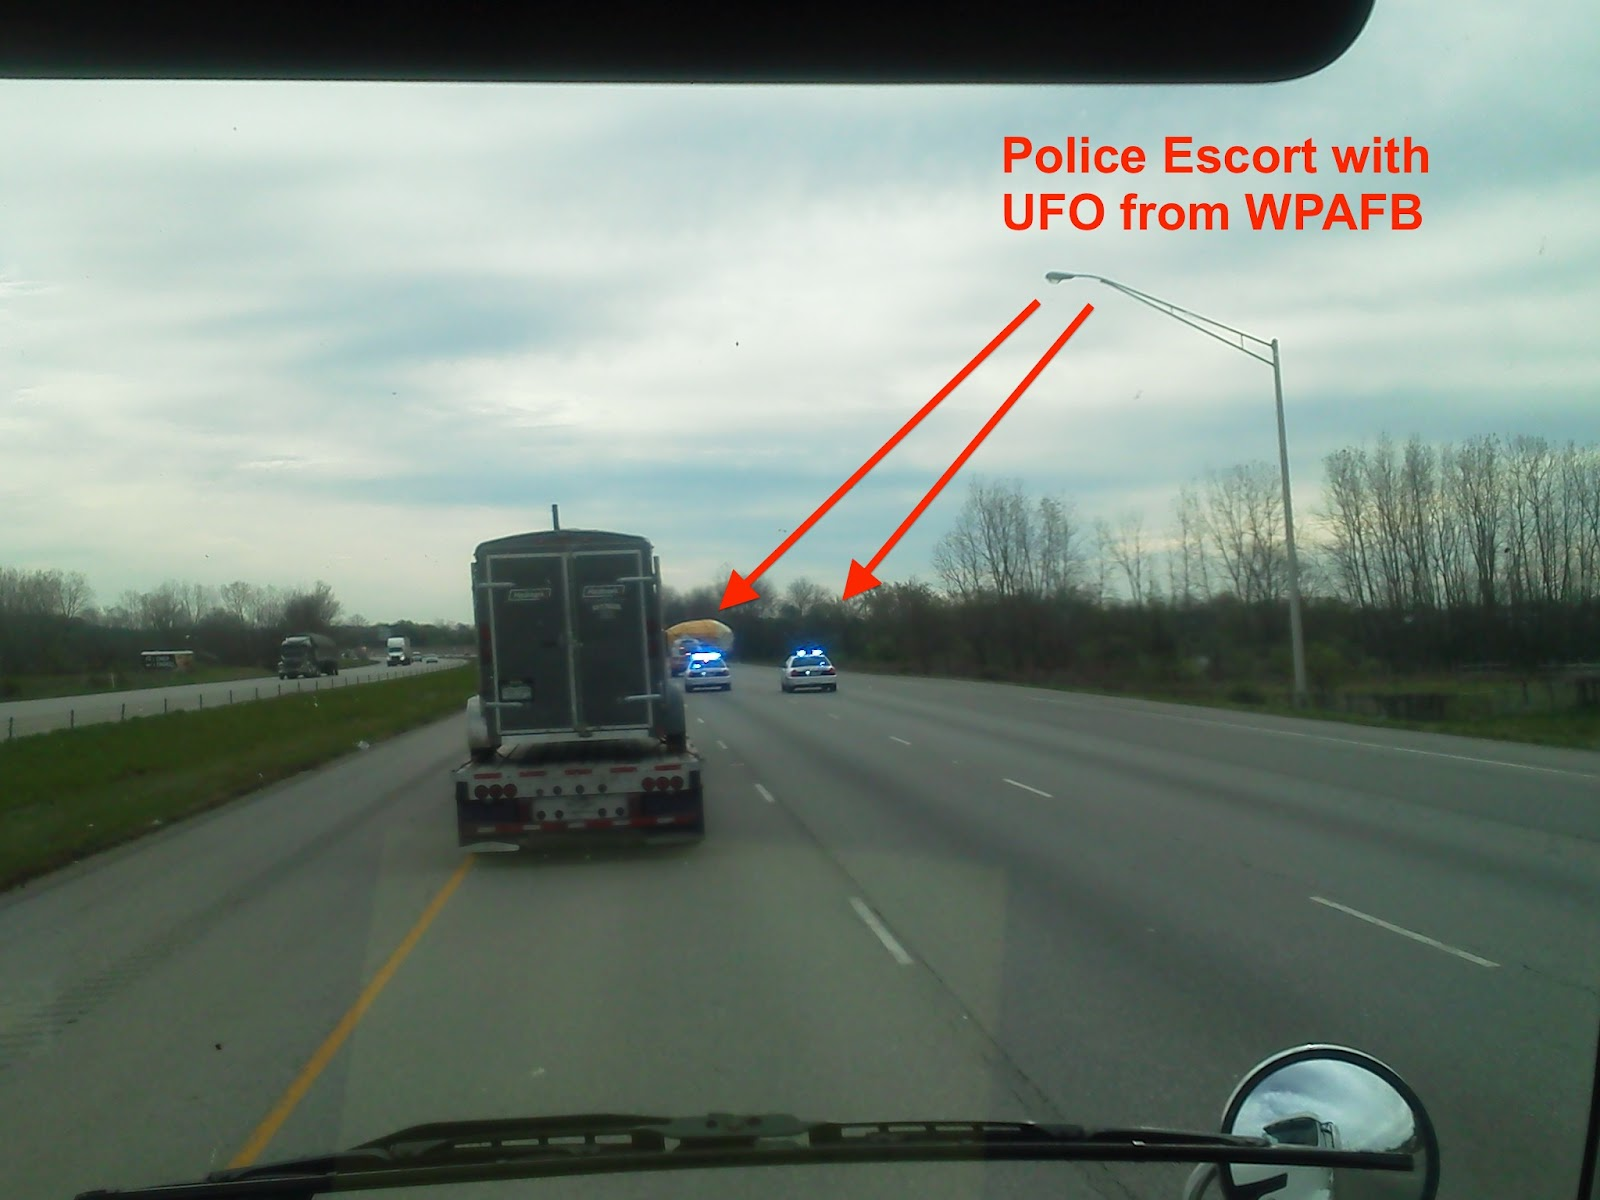 Ufo ufos trailer dayton ohio april 2012 usaf drone tr 3b